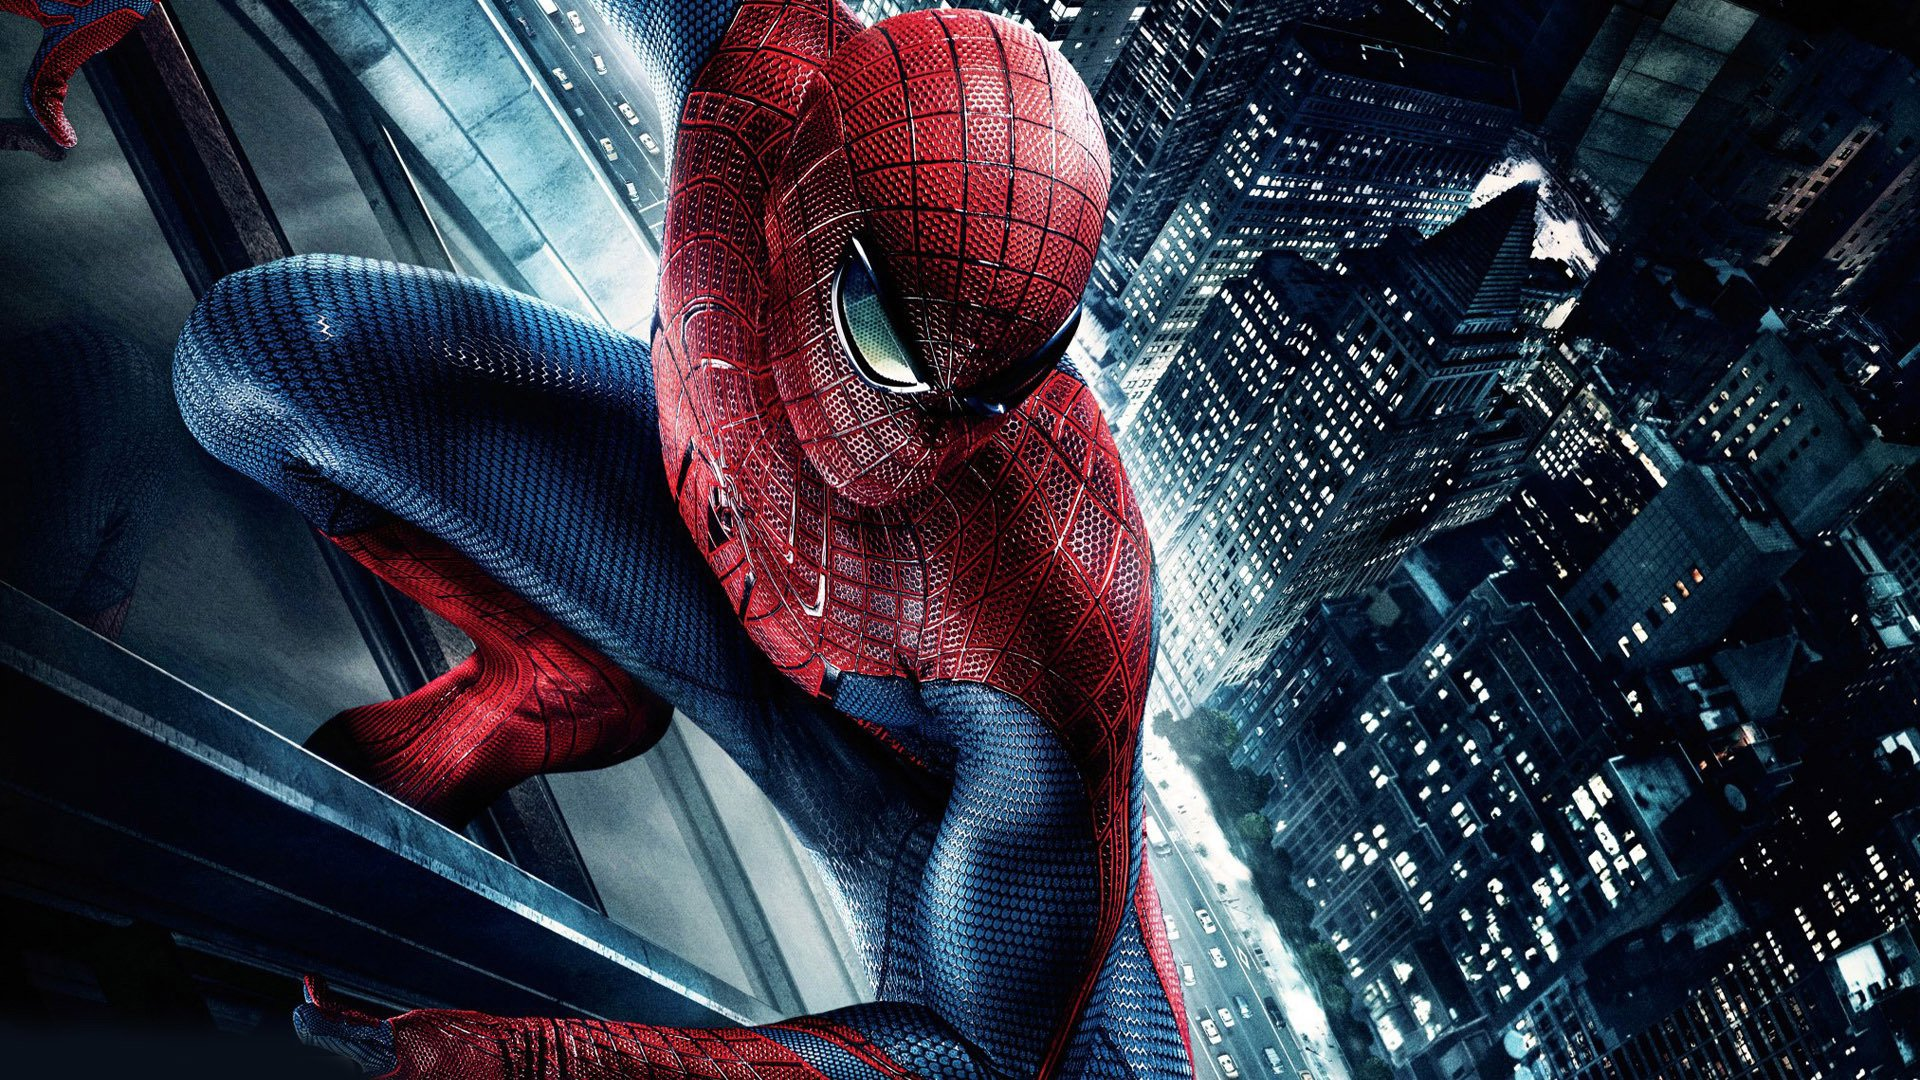 spider man hd wallpapers 1080p wallpapersafari